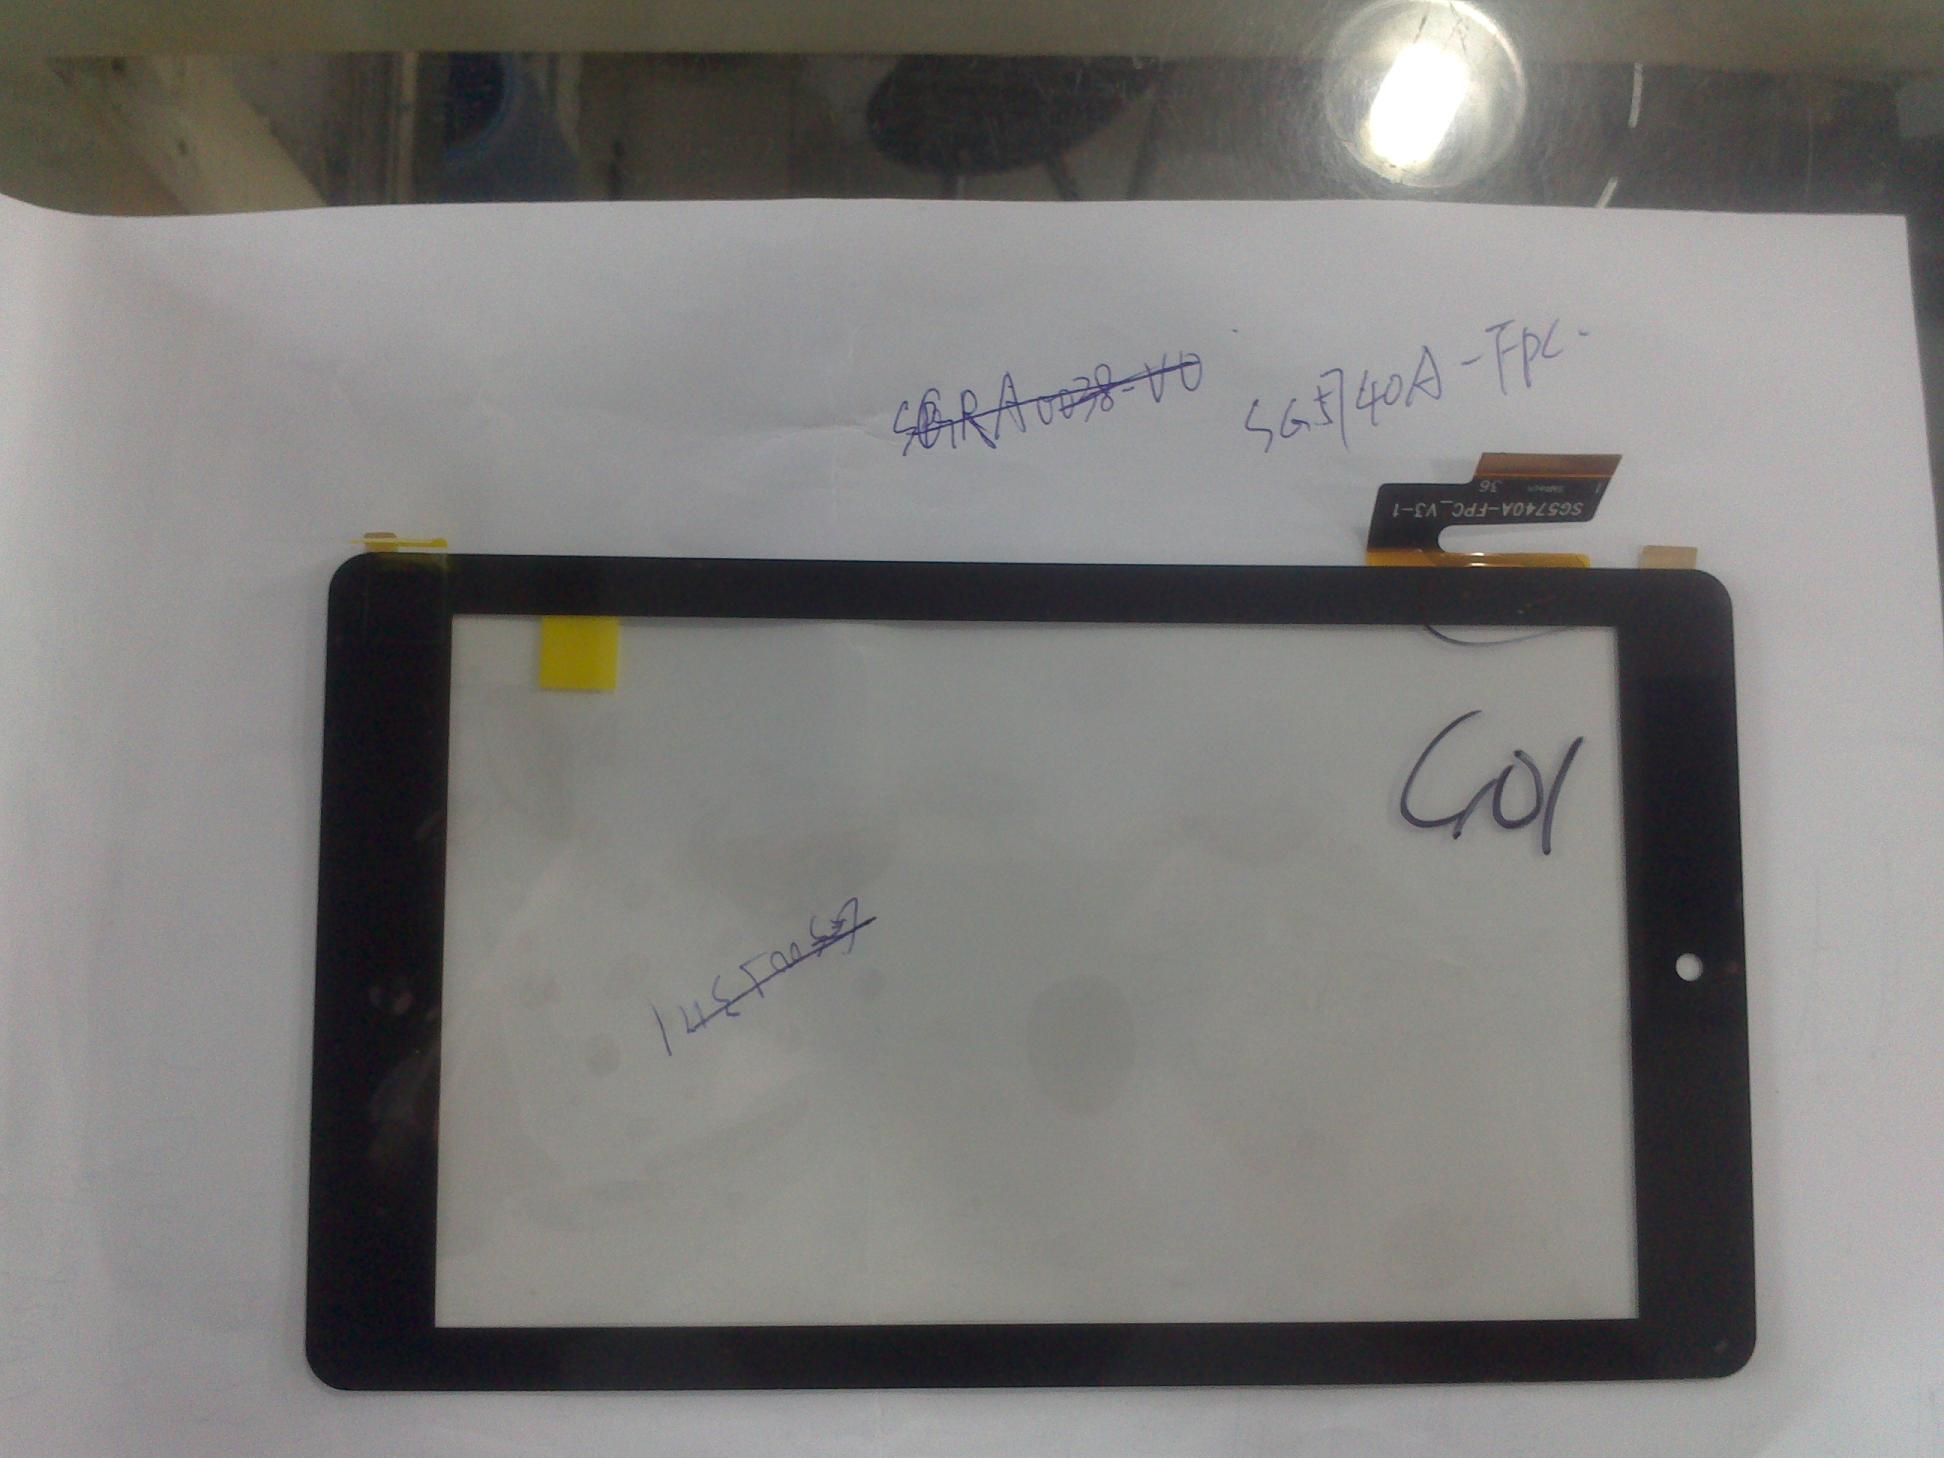 Запчасти для мобильных телефонов 7 inch new handwriting Tablet capacitive touch screen screen screen number is sg5740a/fpc_v3/1 SG5740A-FPC_V3-1 original new 10 1 inch m101nwt2 r0 lcd screen for viewsonic viewpad 10s tablet pc mid free shipping